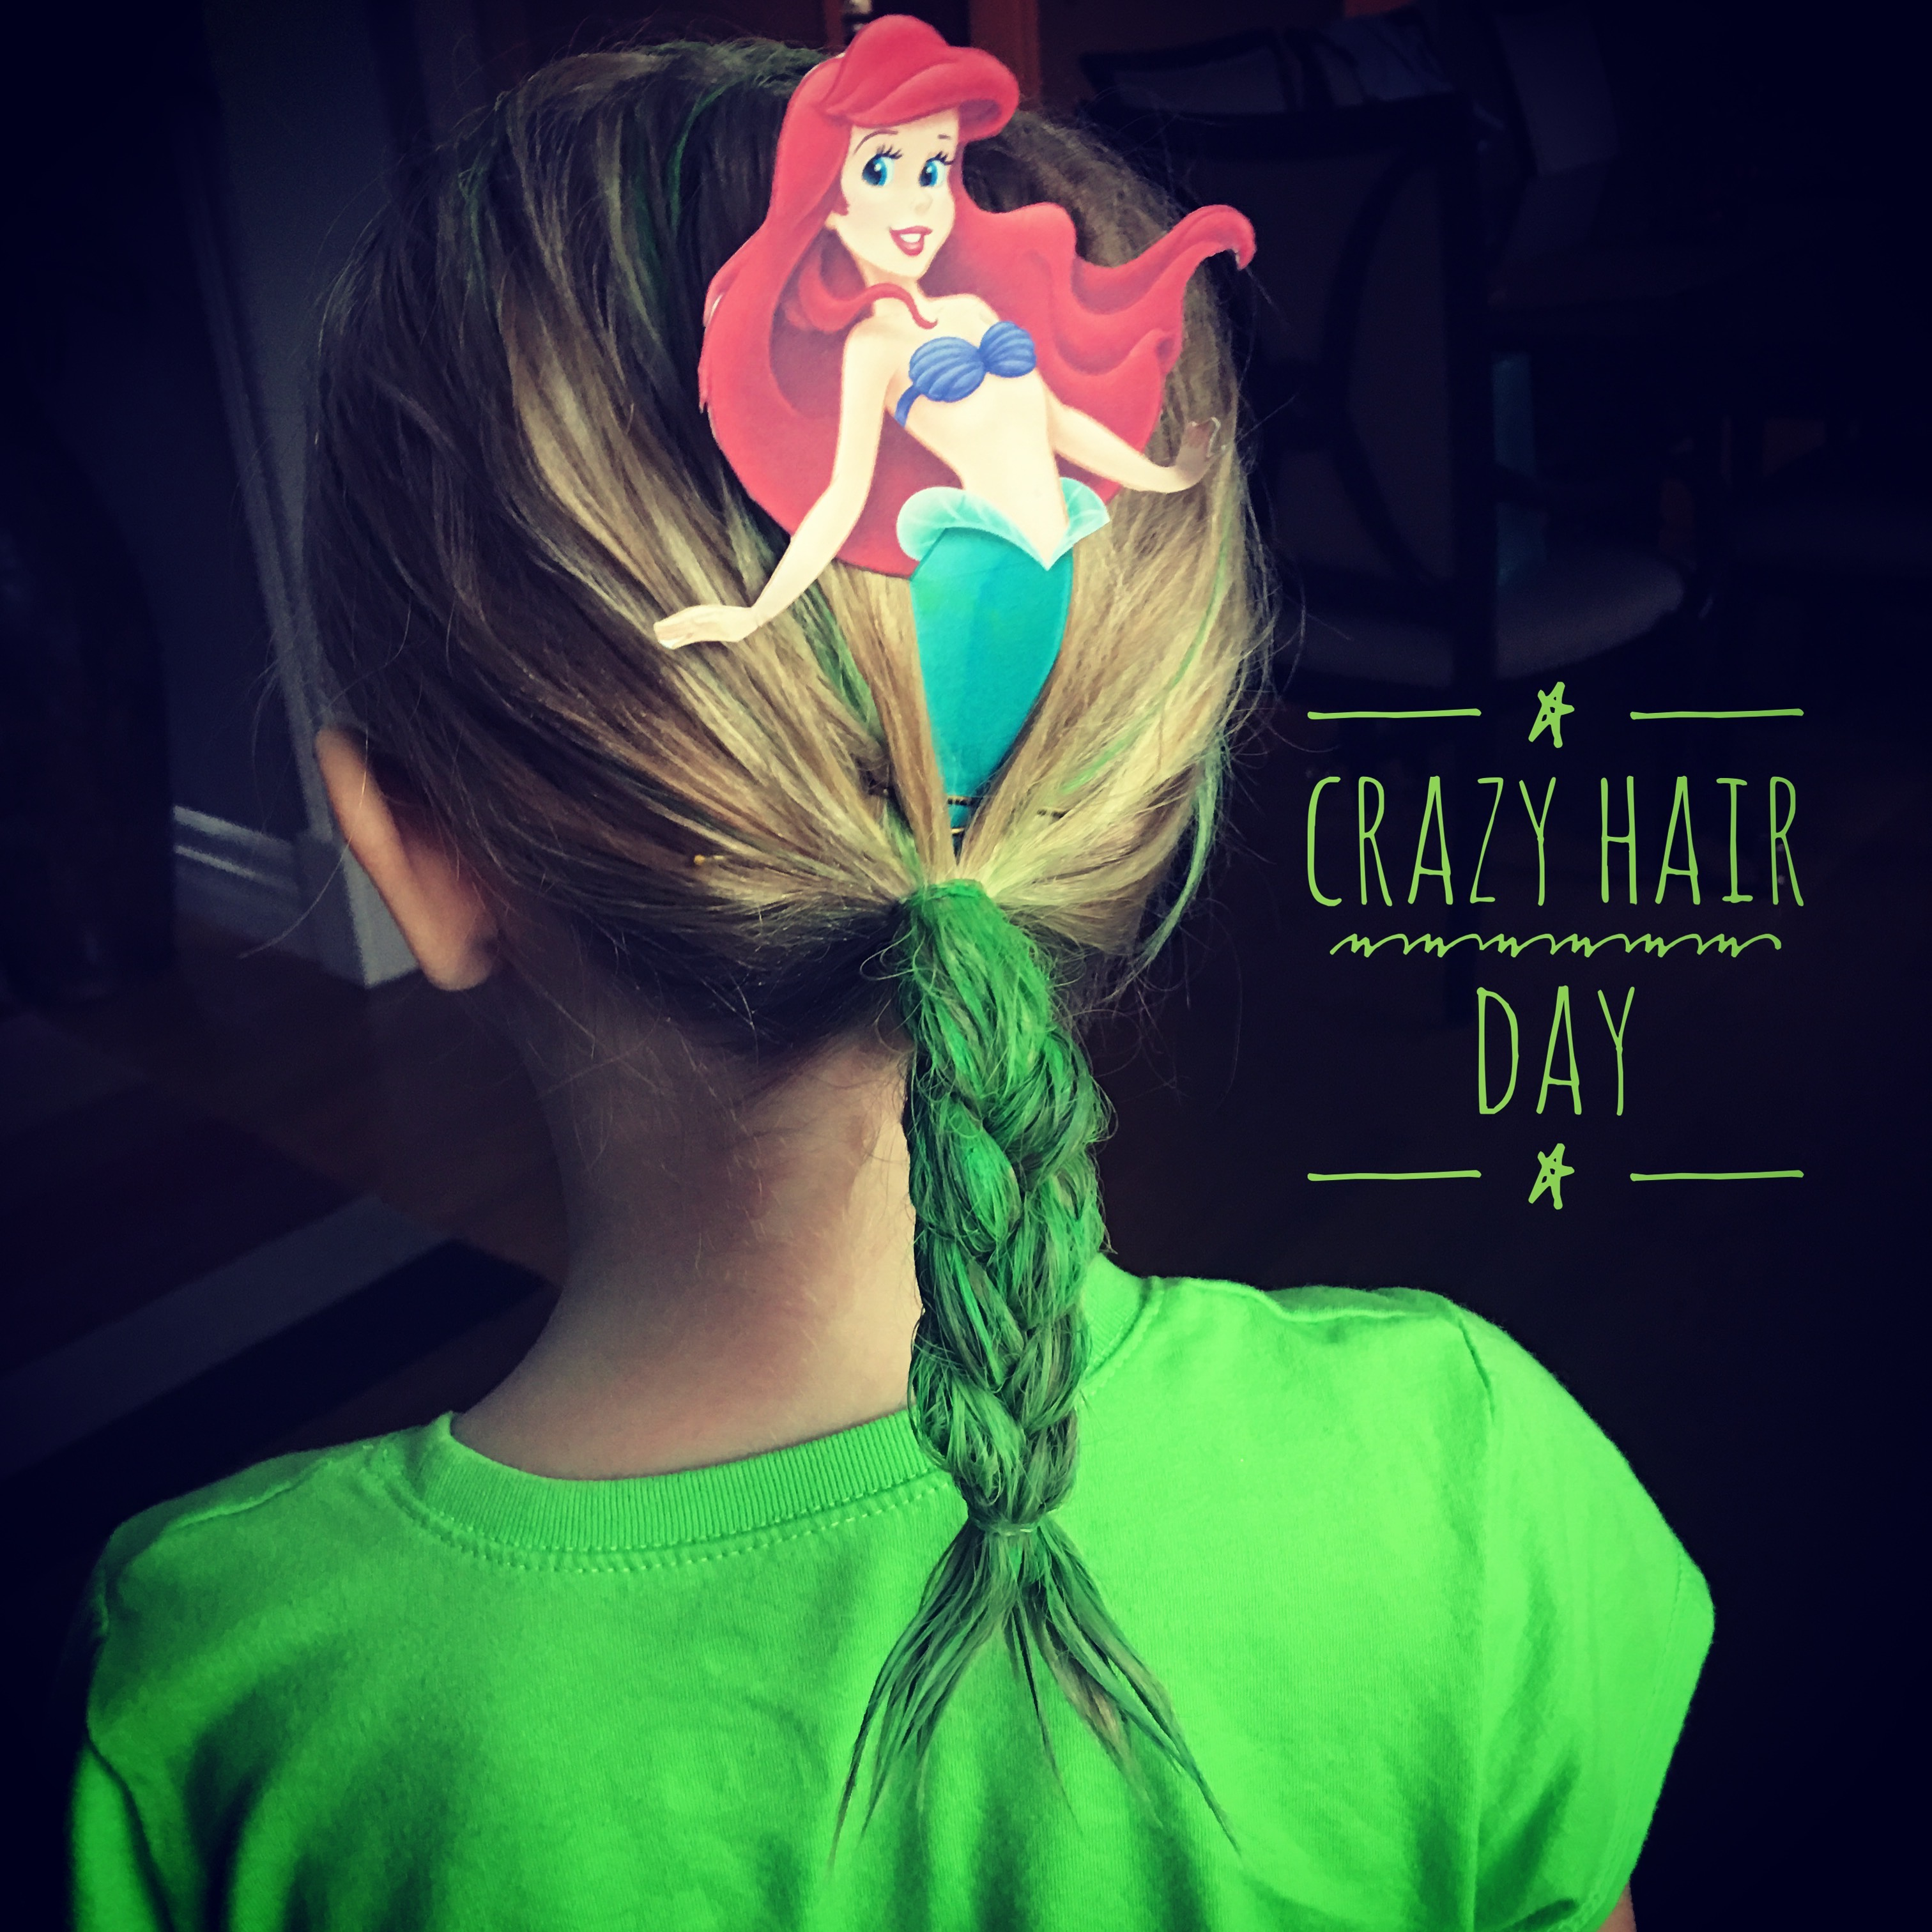 Crazy Hair Day: back to school means lots of spirit days. Here is a simple way to create crazy hair and doesn't take too long.